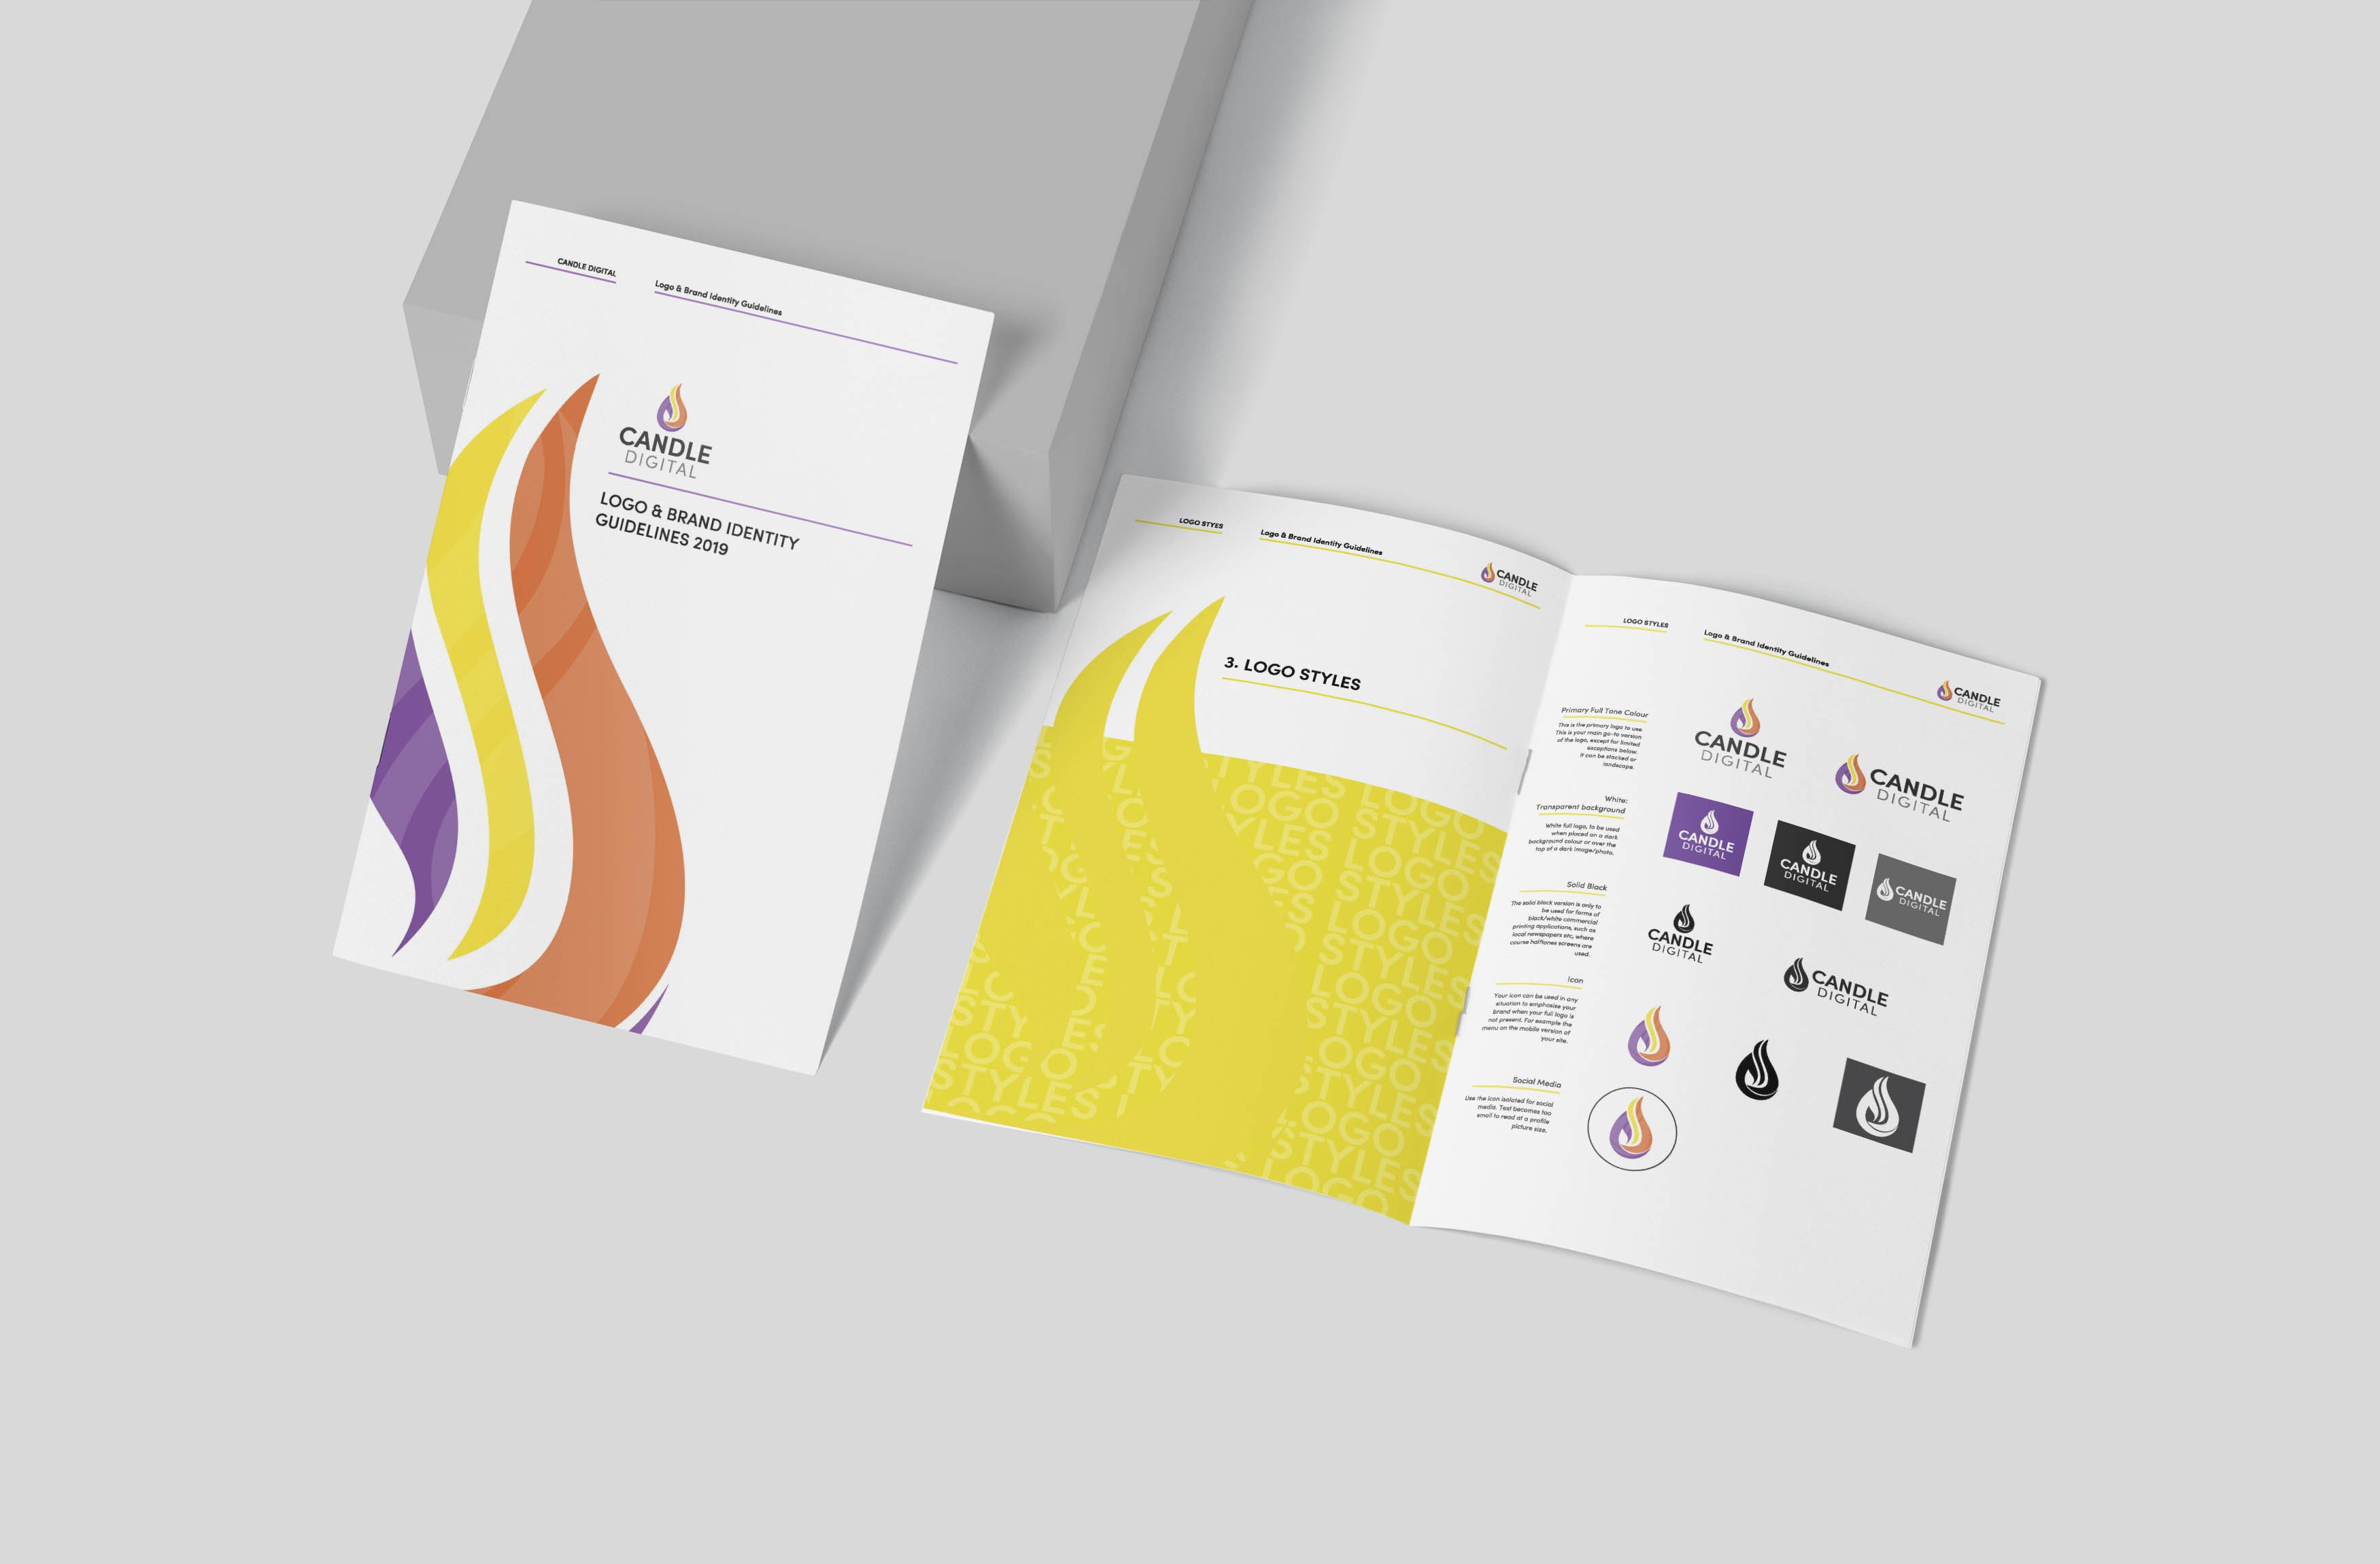 Company Brand Guidelines